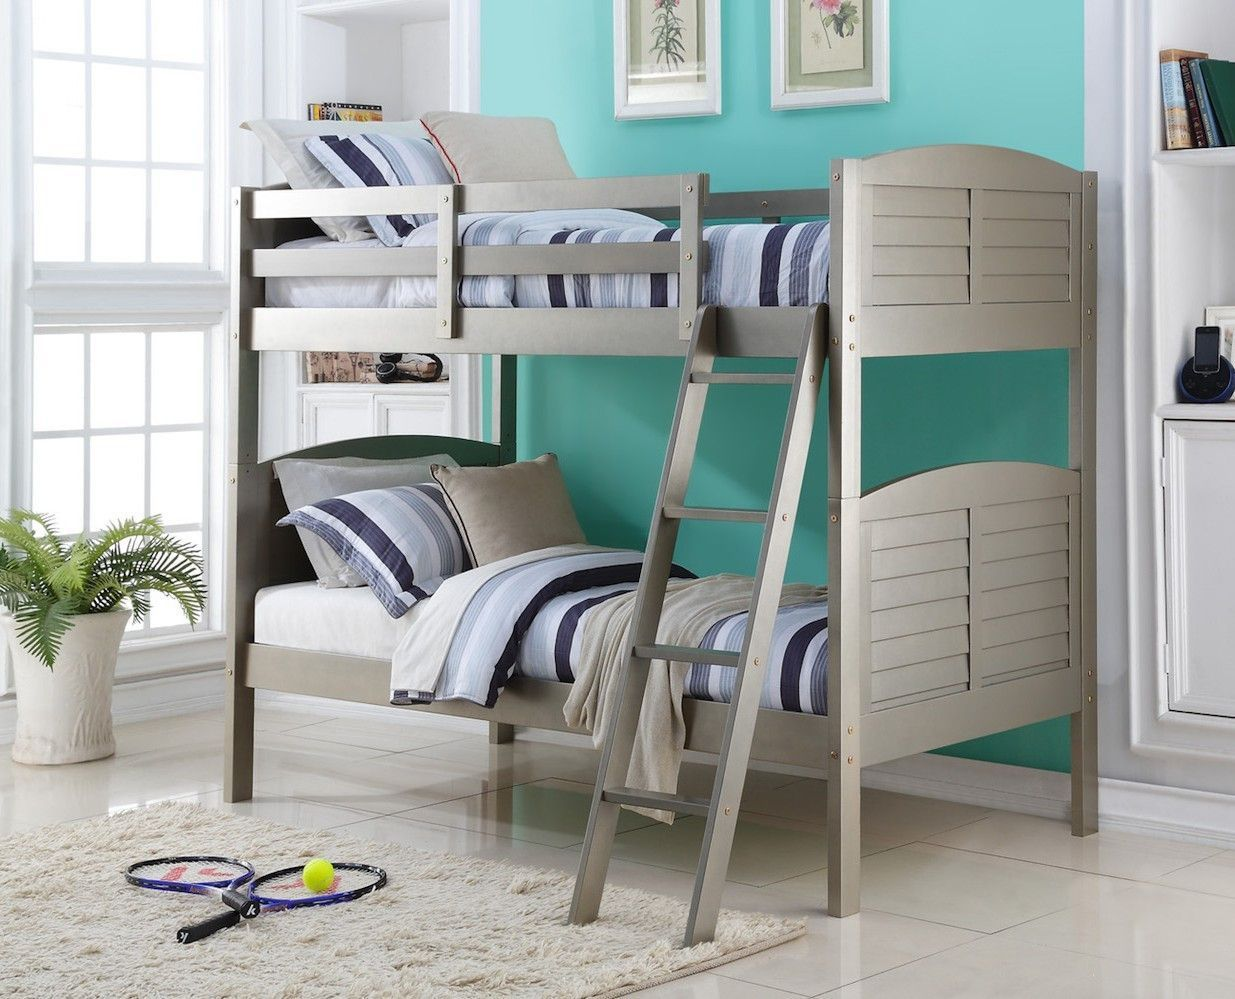 Bunk Beds For Teens In A Platinum Grey Finish